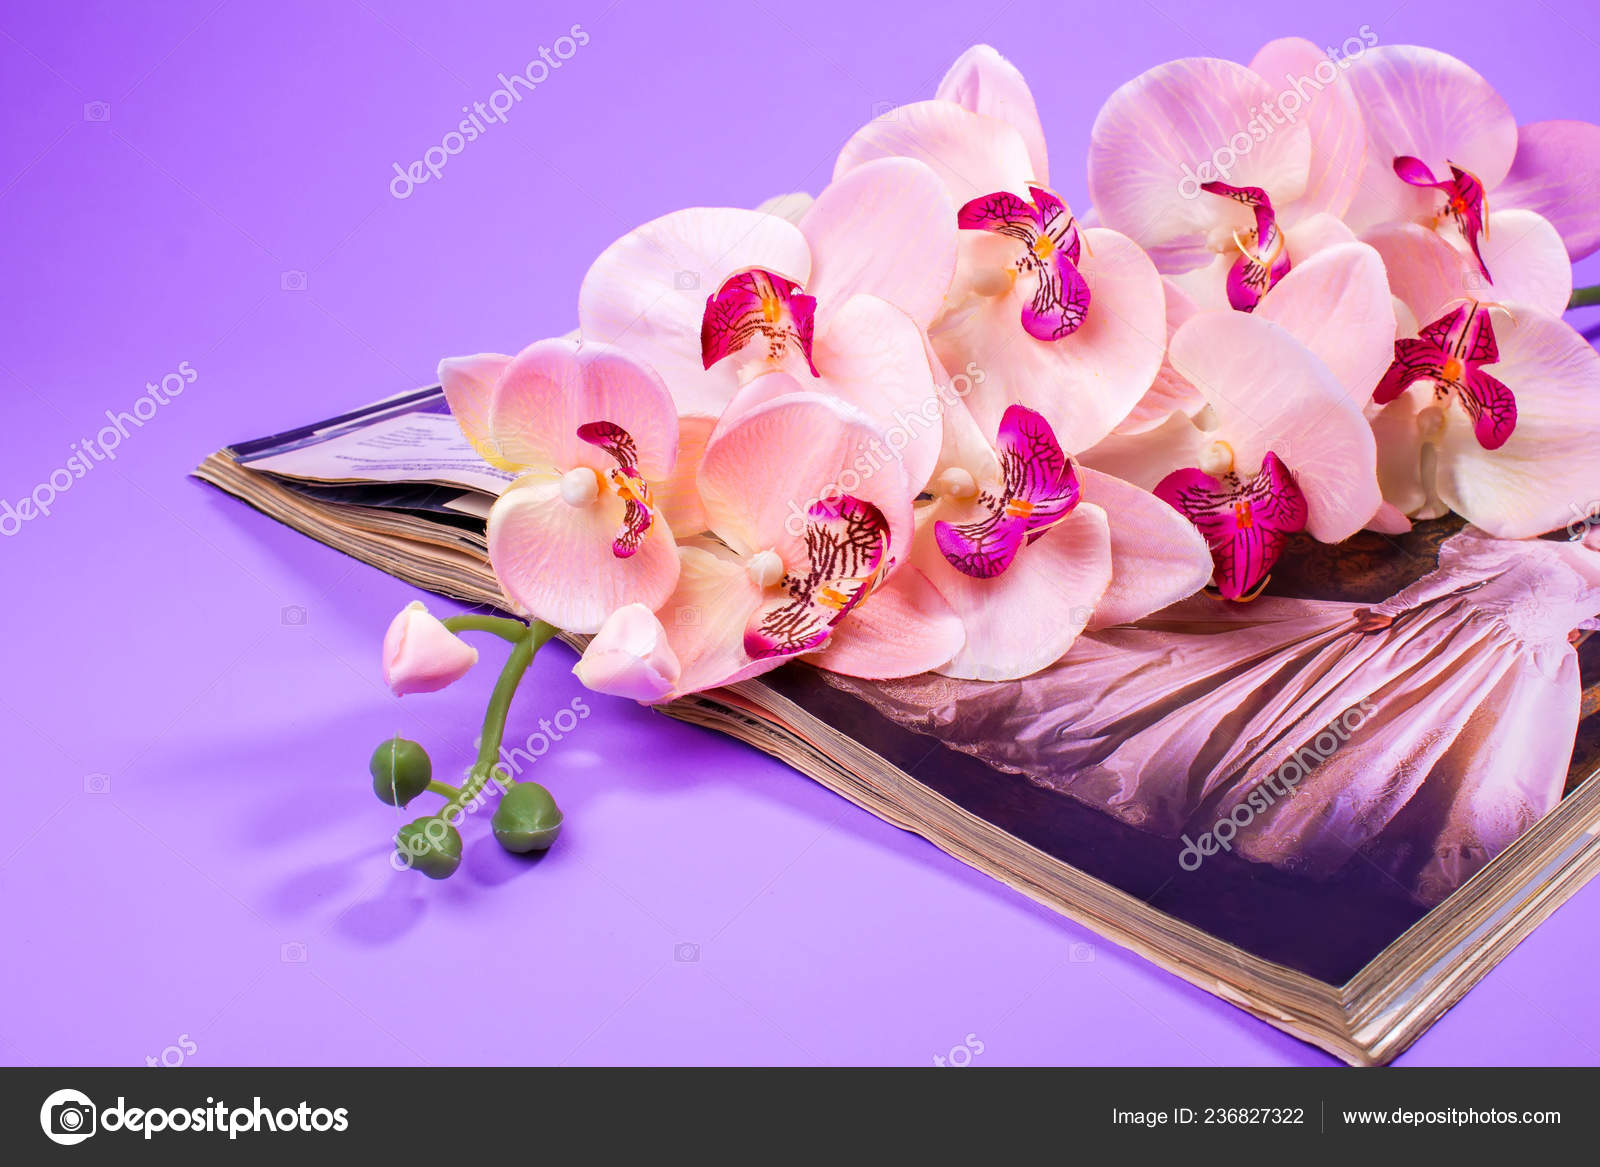 Orchid Design Flower Beauty Background Spa Magazine Pink